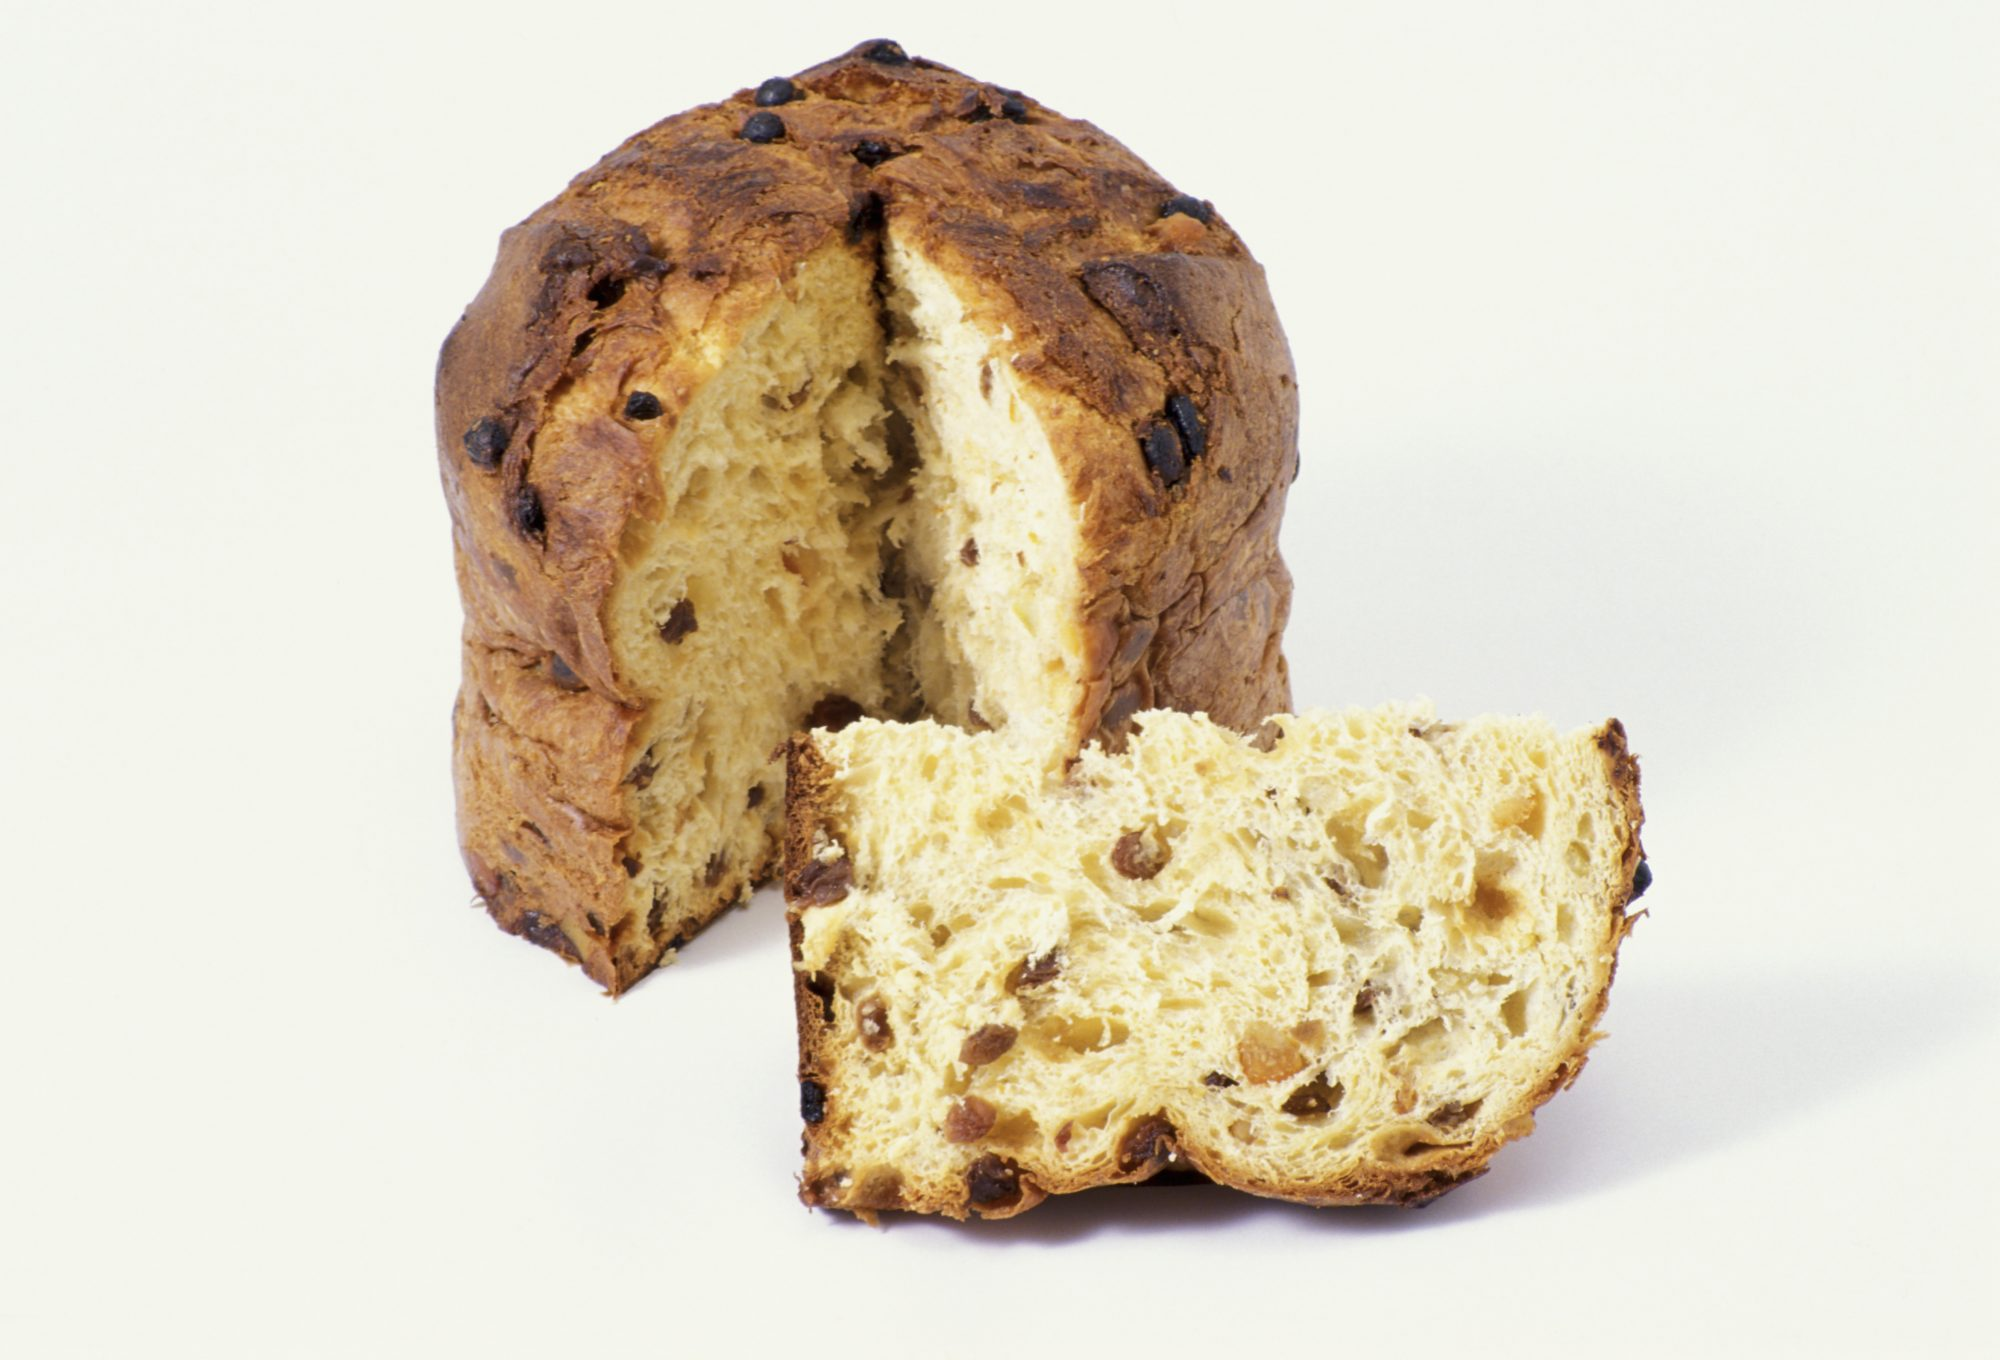 getty-panettone-image